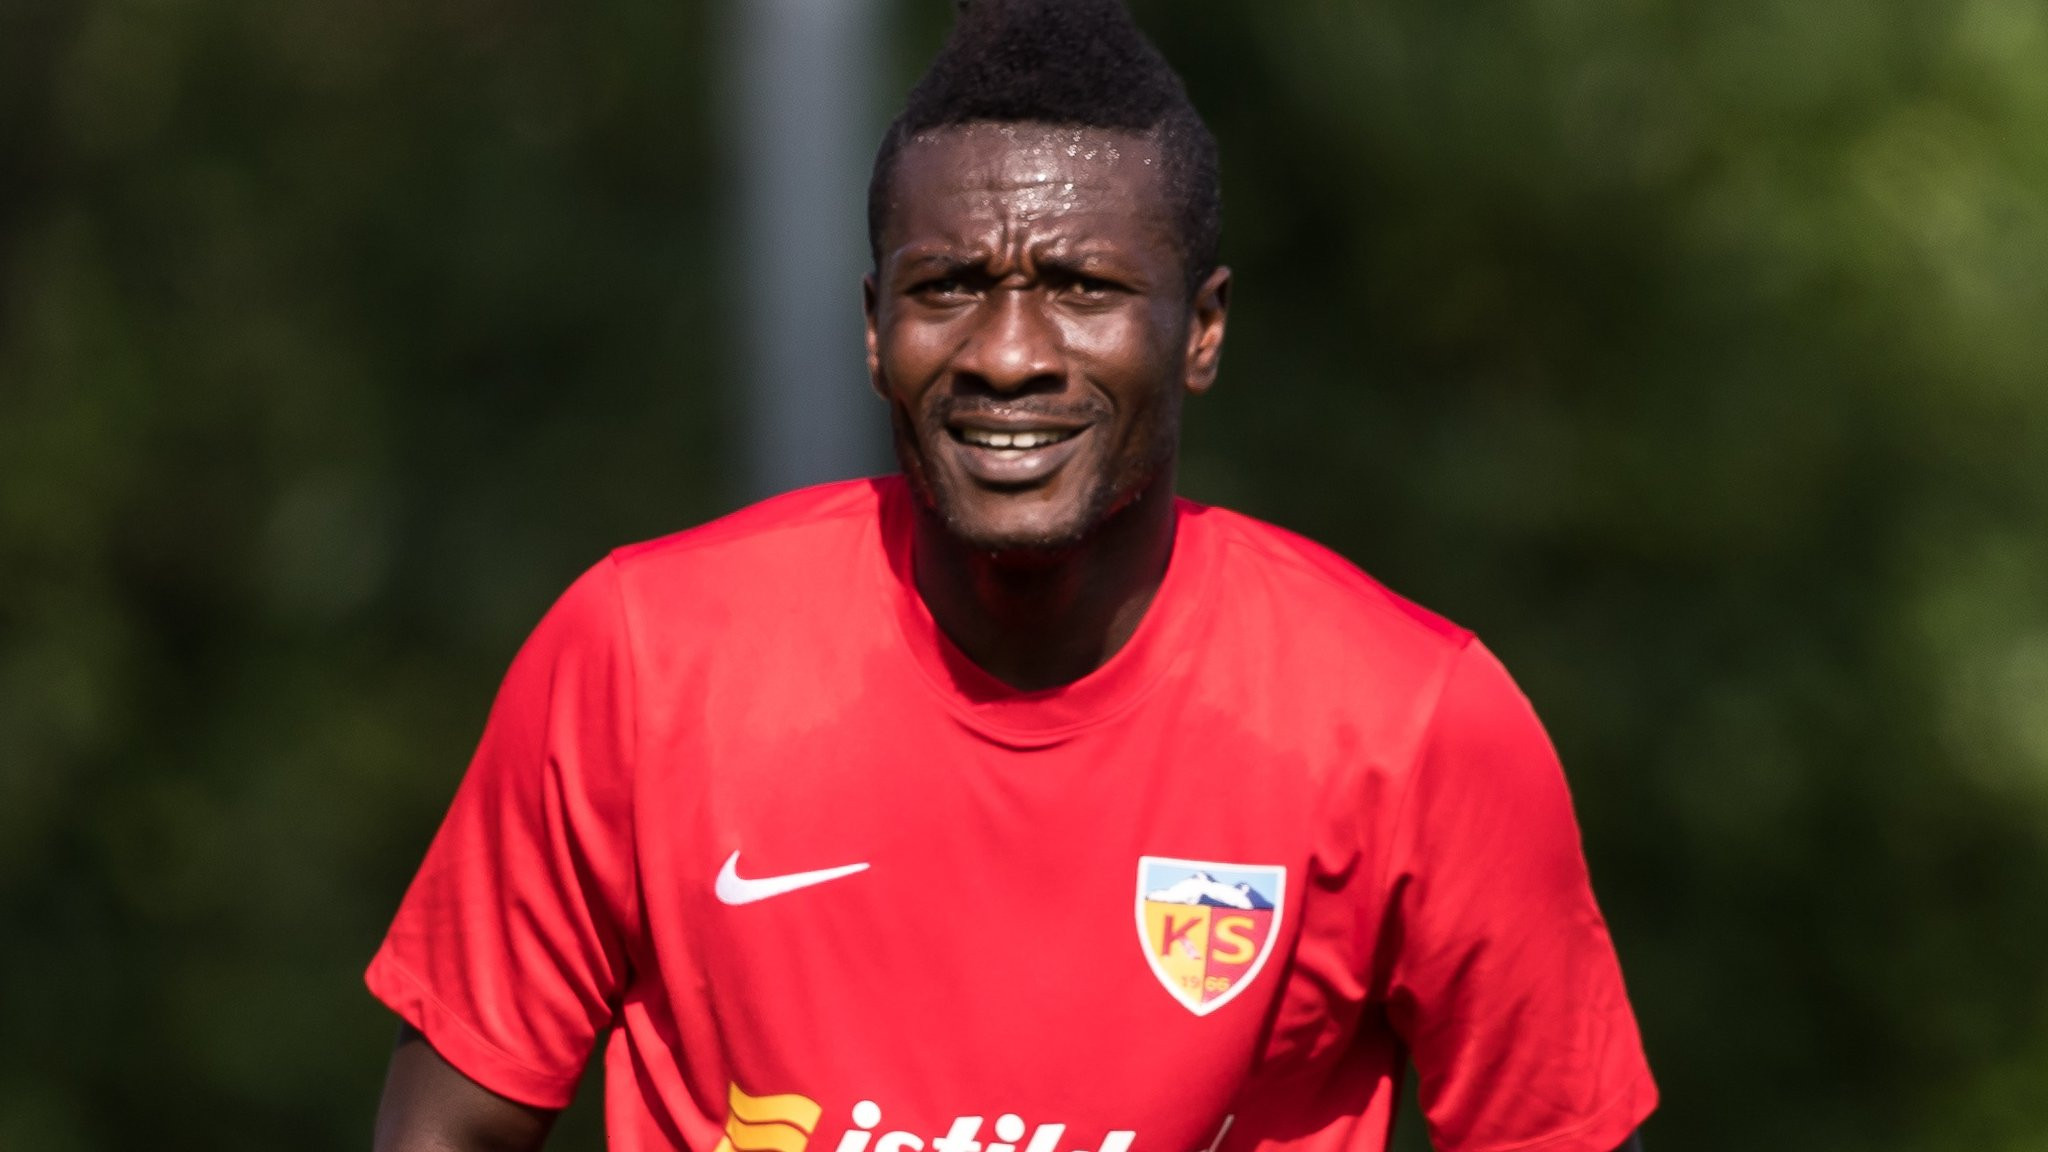 Asamoah Gyan: Ghana striker reverses decision to retire after call from president